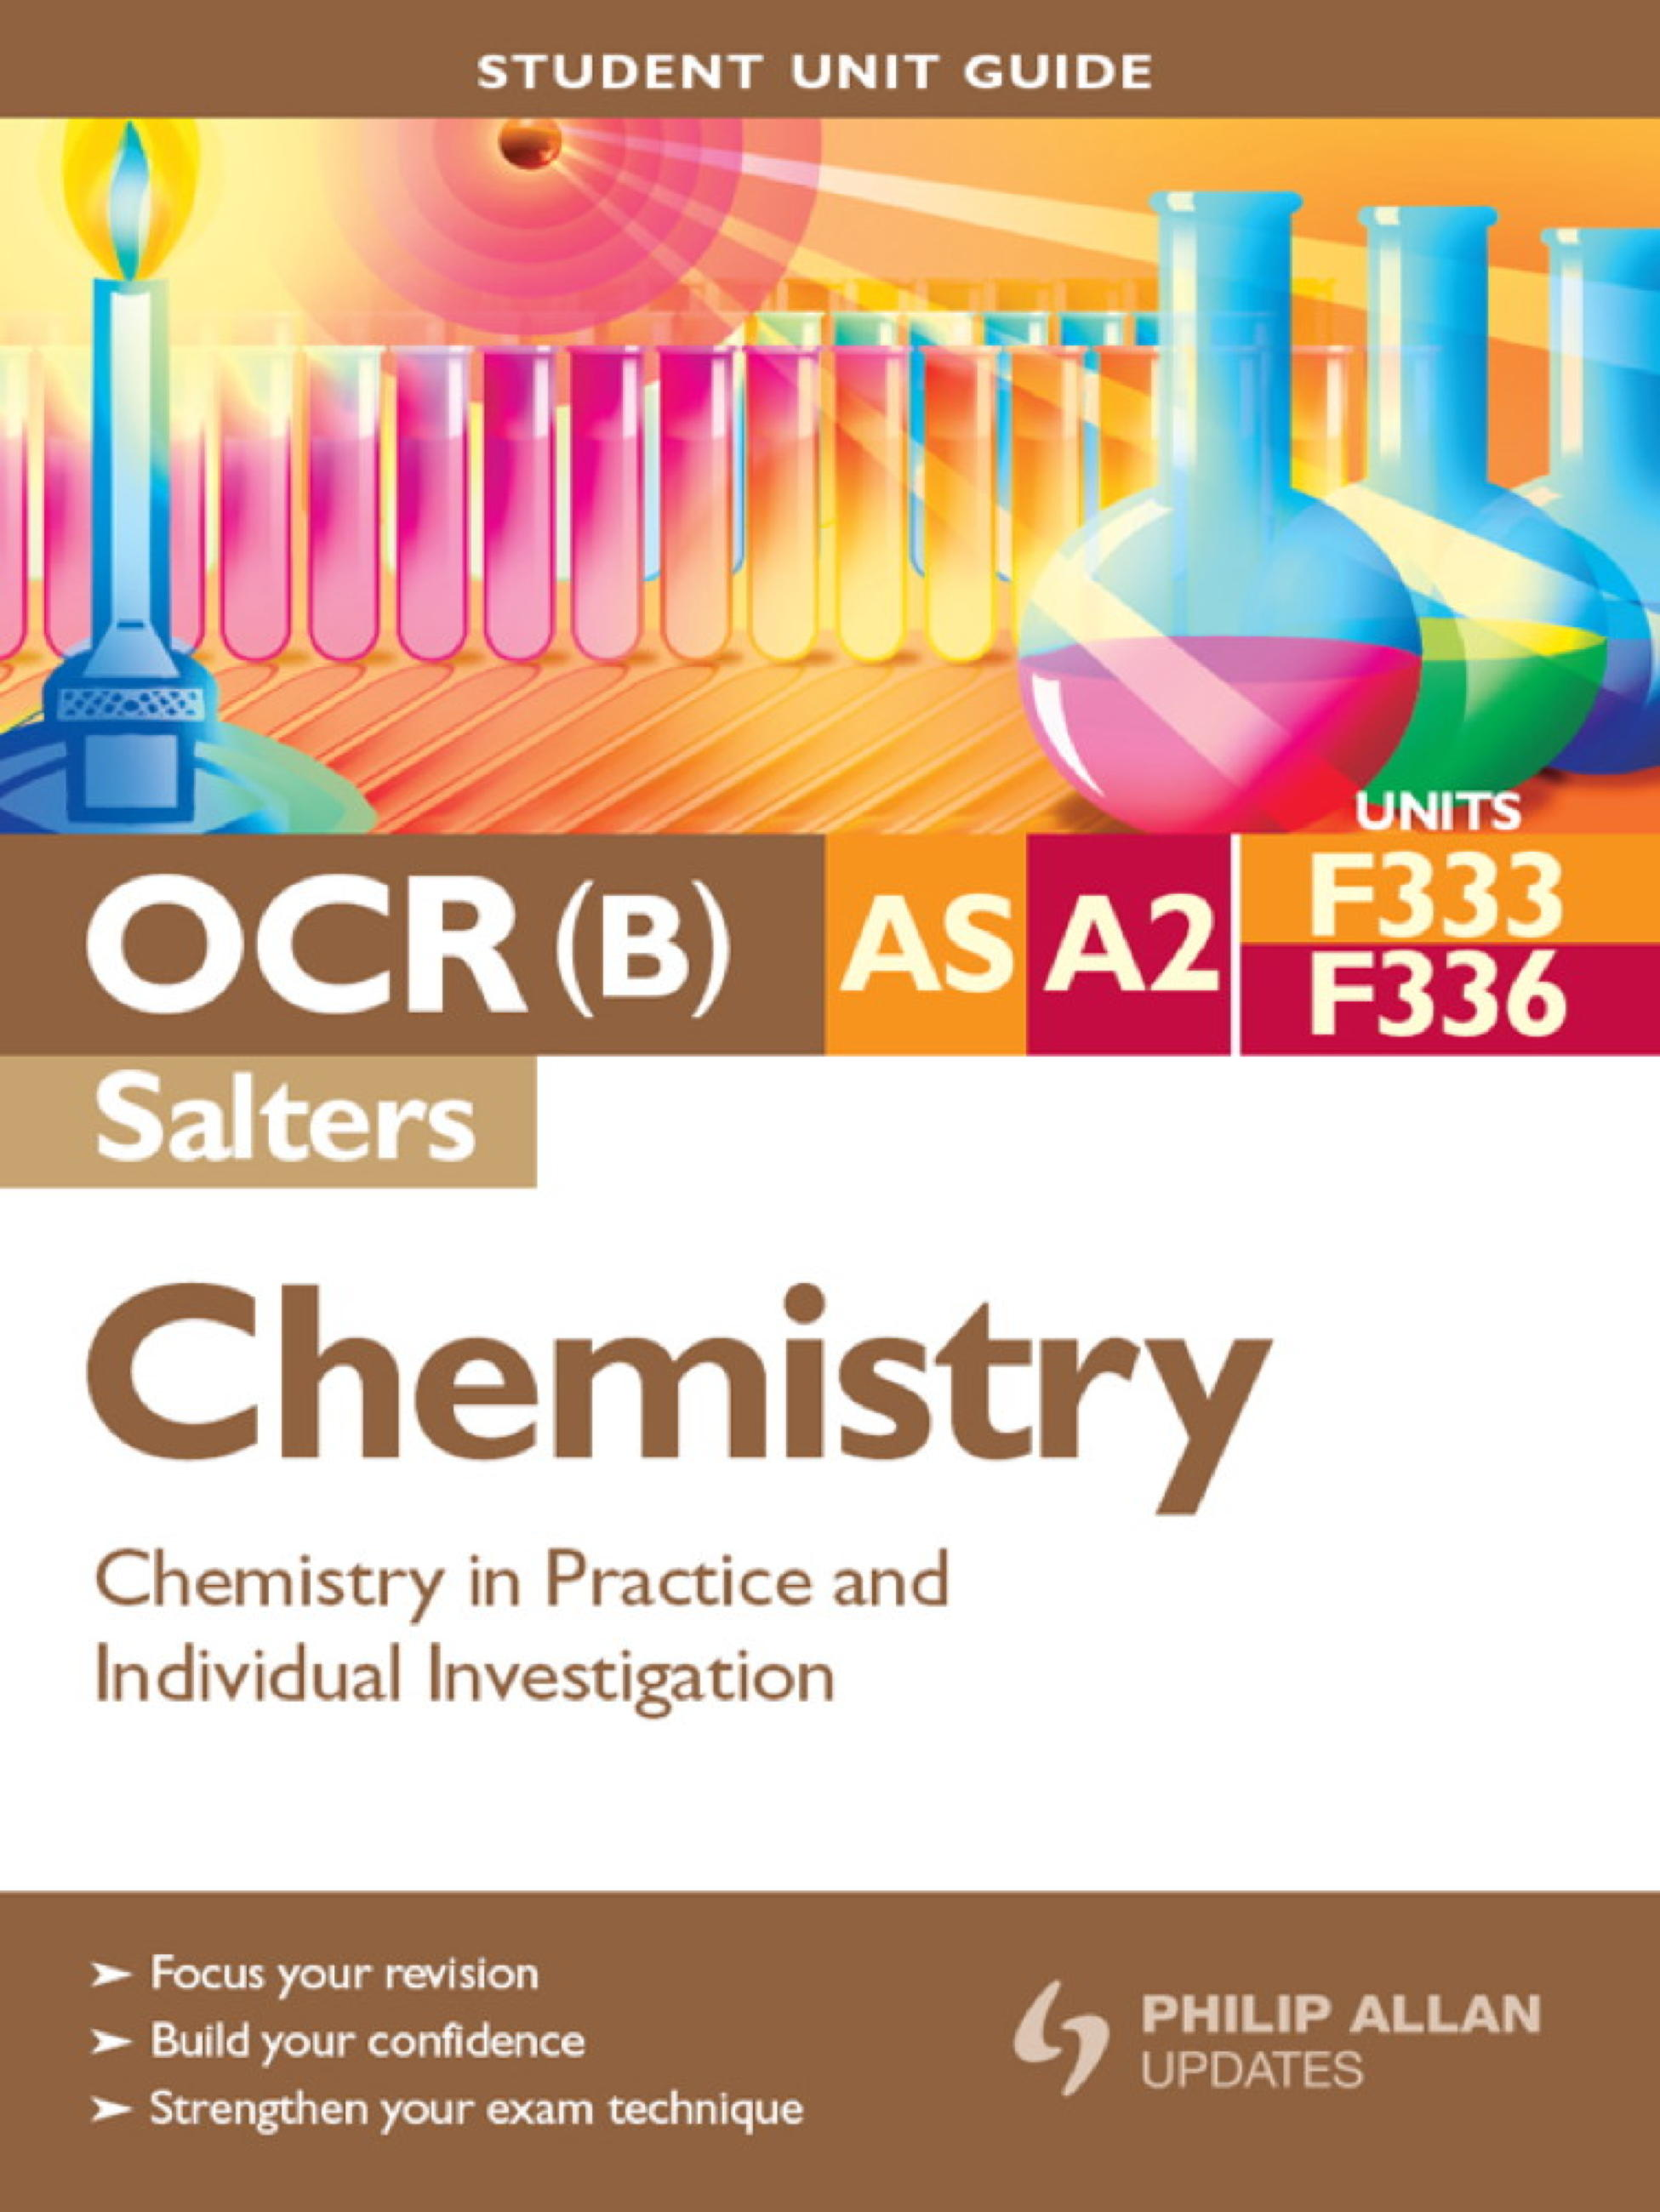 ocr chemistry salters b a2 coursework